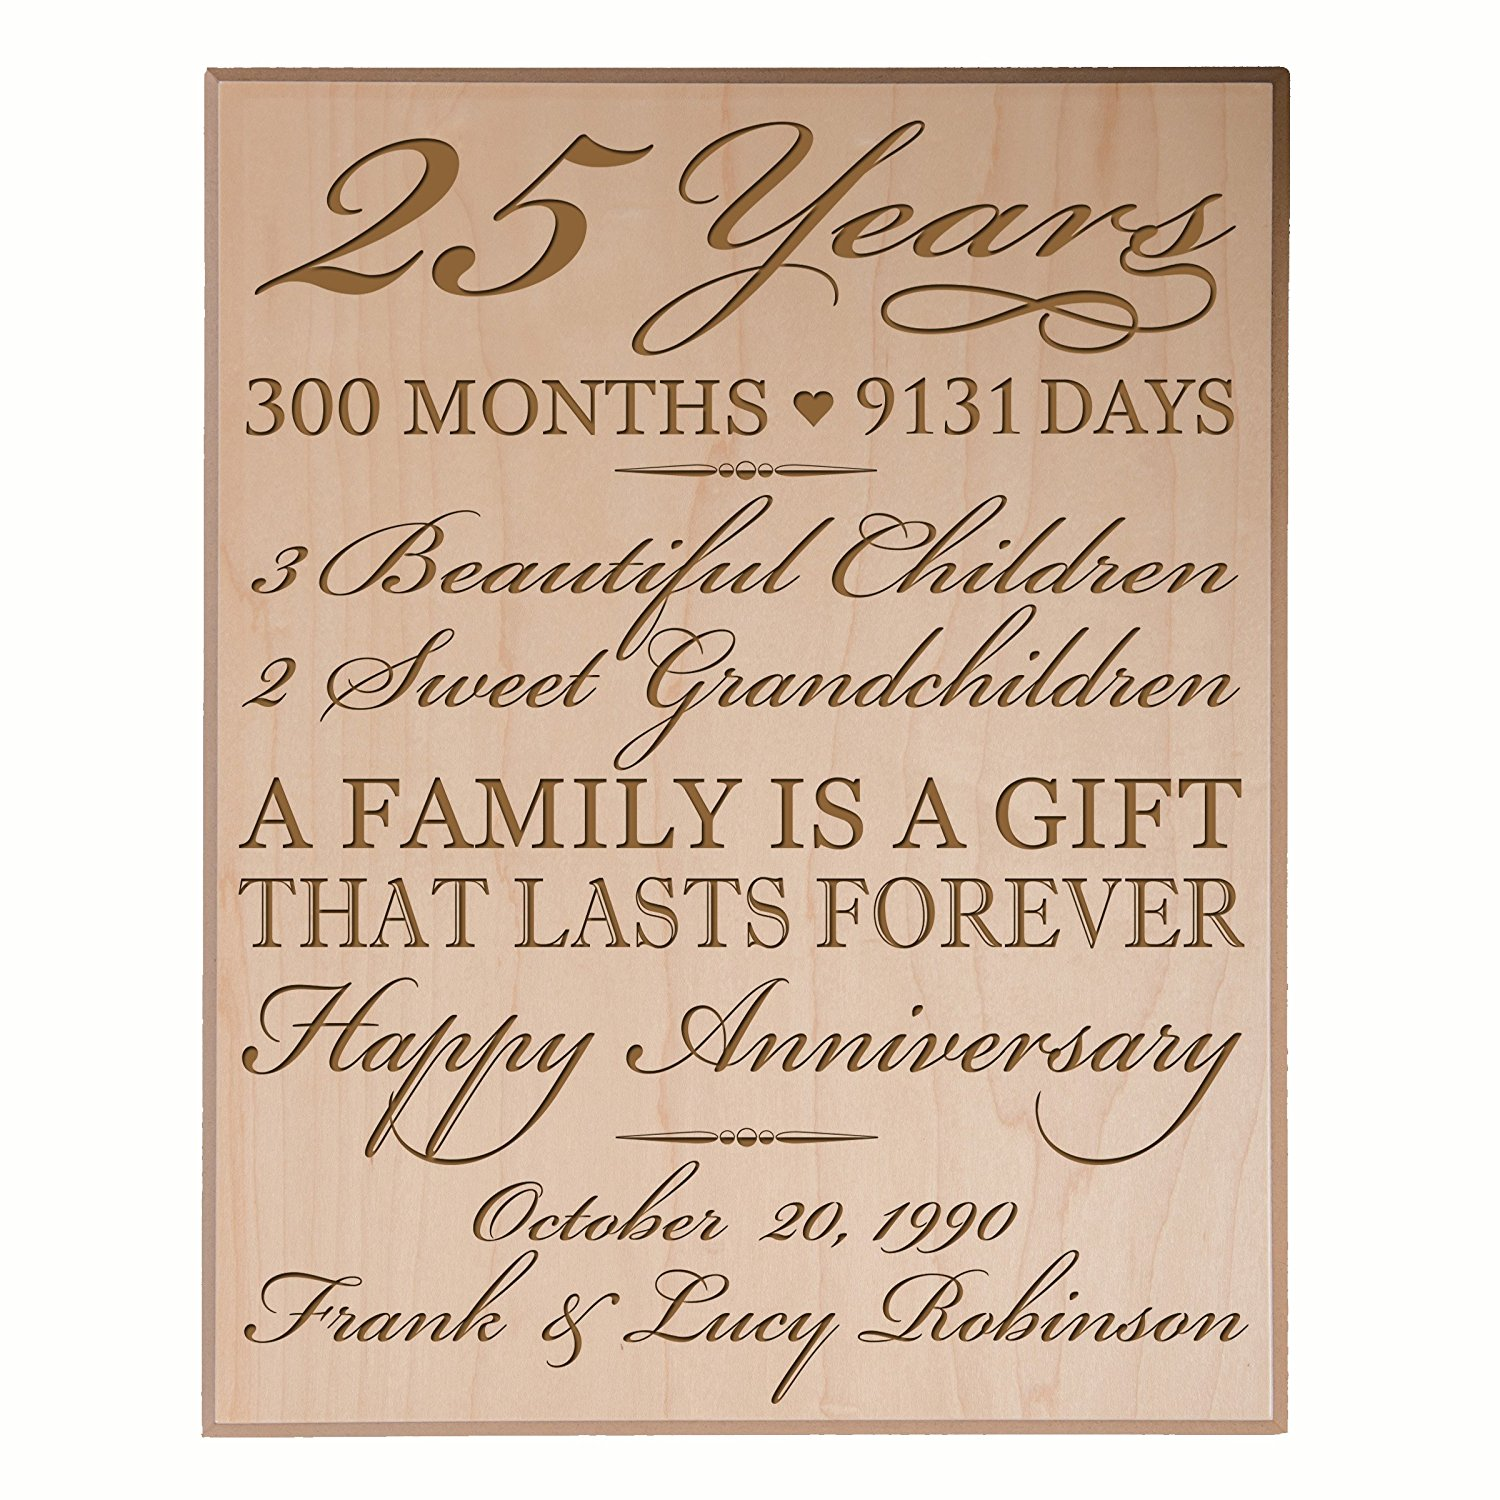 """Personalized 25th Anniversary Gifts for him her Couple parents,Custom Made 25 year Anniversary Gifts ideas Wall Plaque 12"""" x 15"""" By Dayspring Milestones (Maple veneer)"""